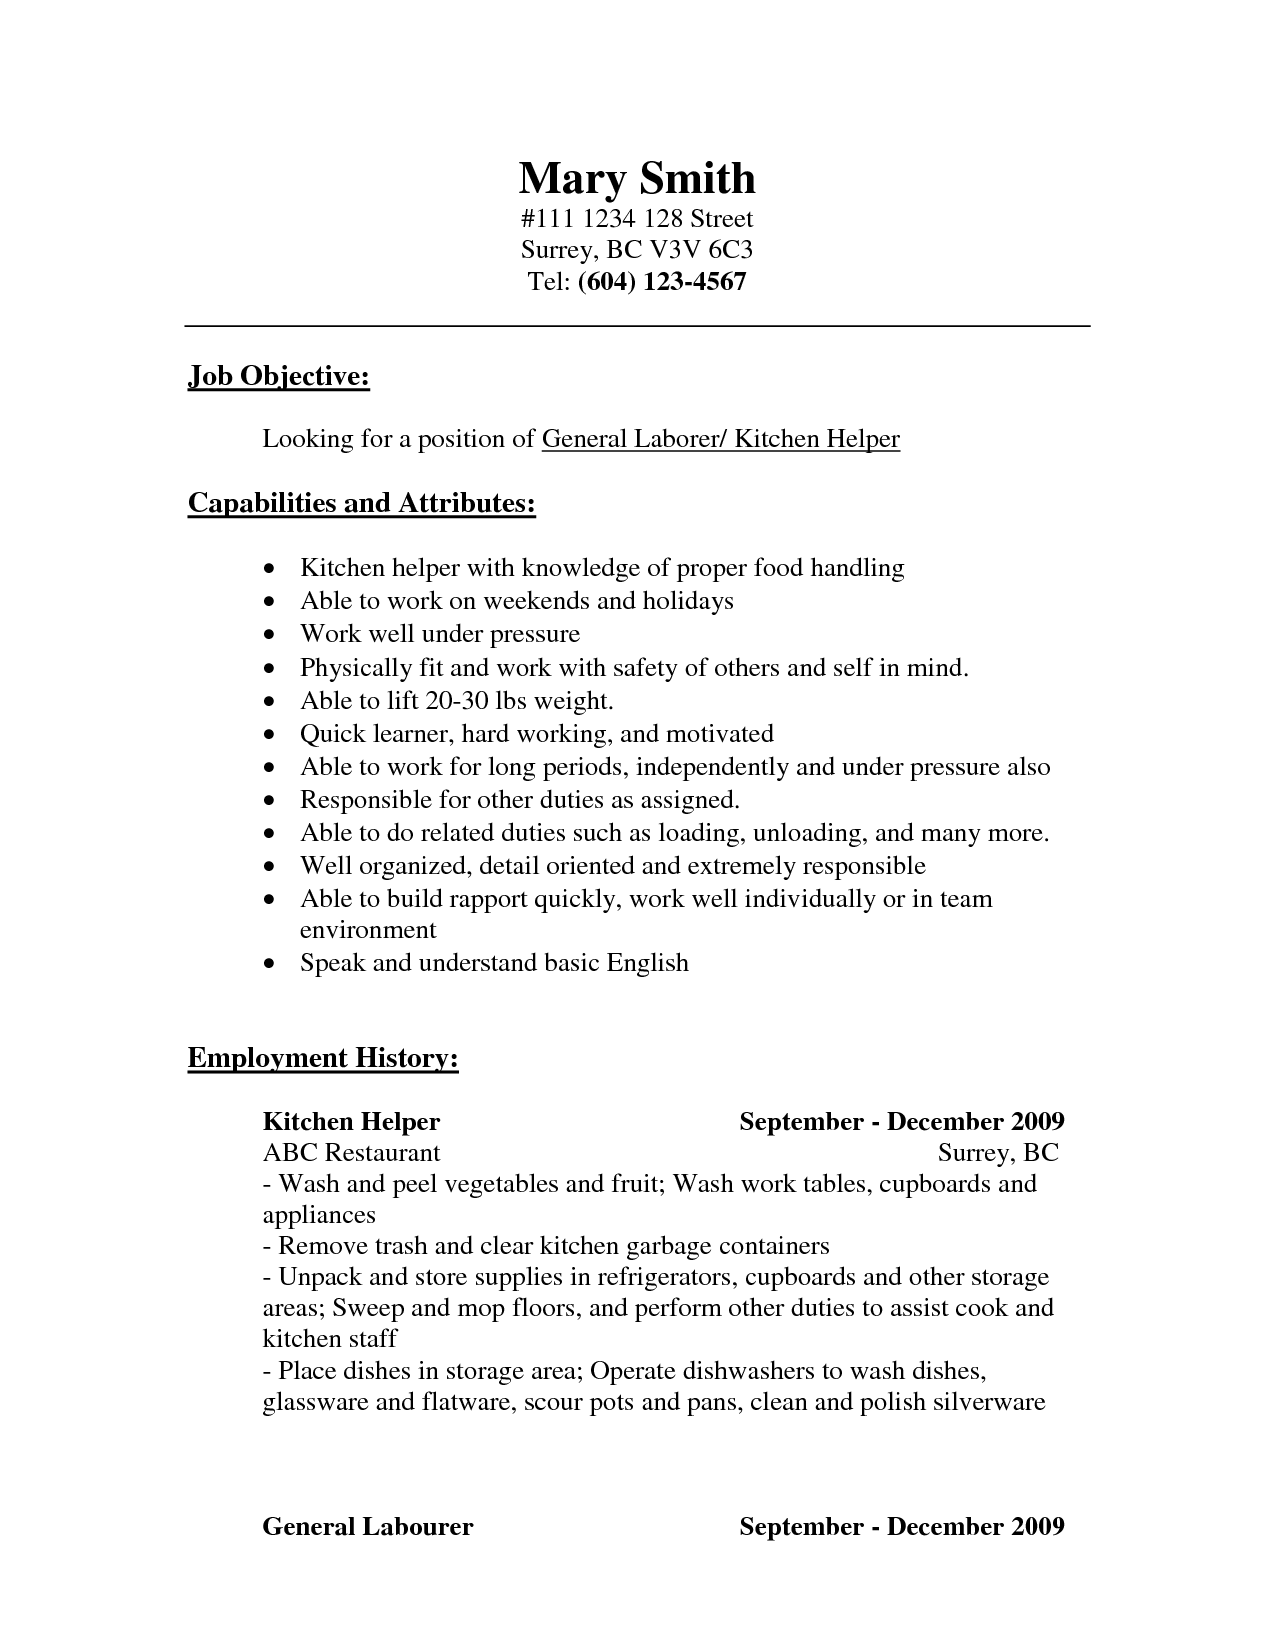 Sample Resume For Cook Position Resume Examples Kitchen Helper  Pinterest  Resume Helper Letter .